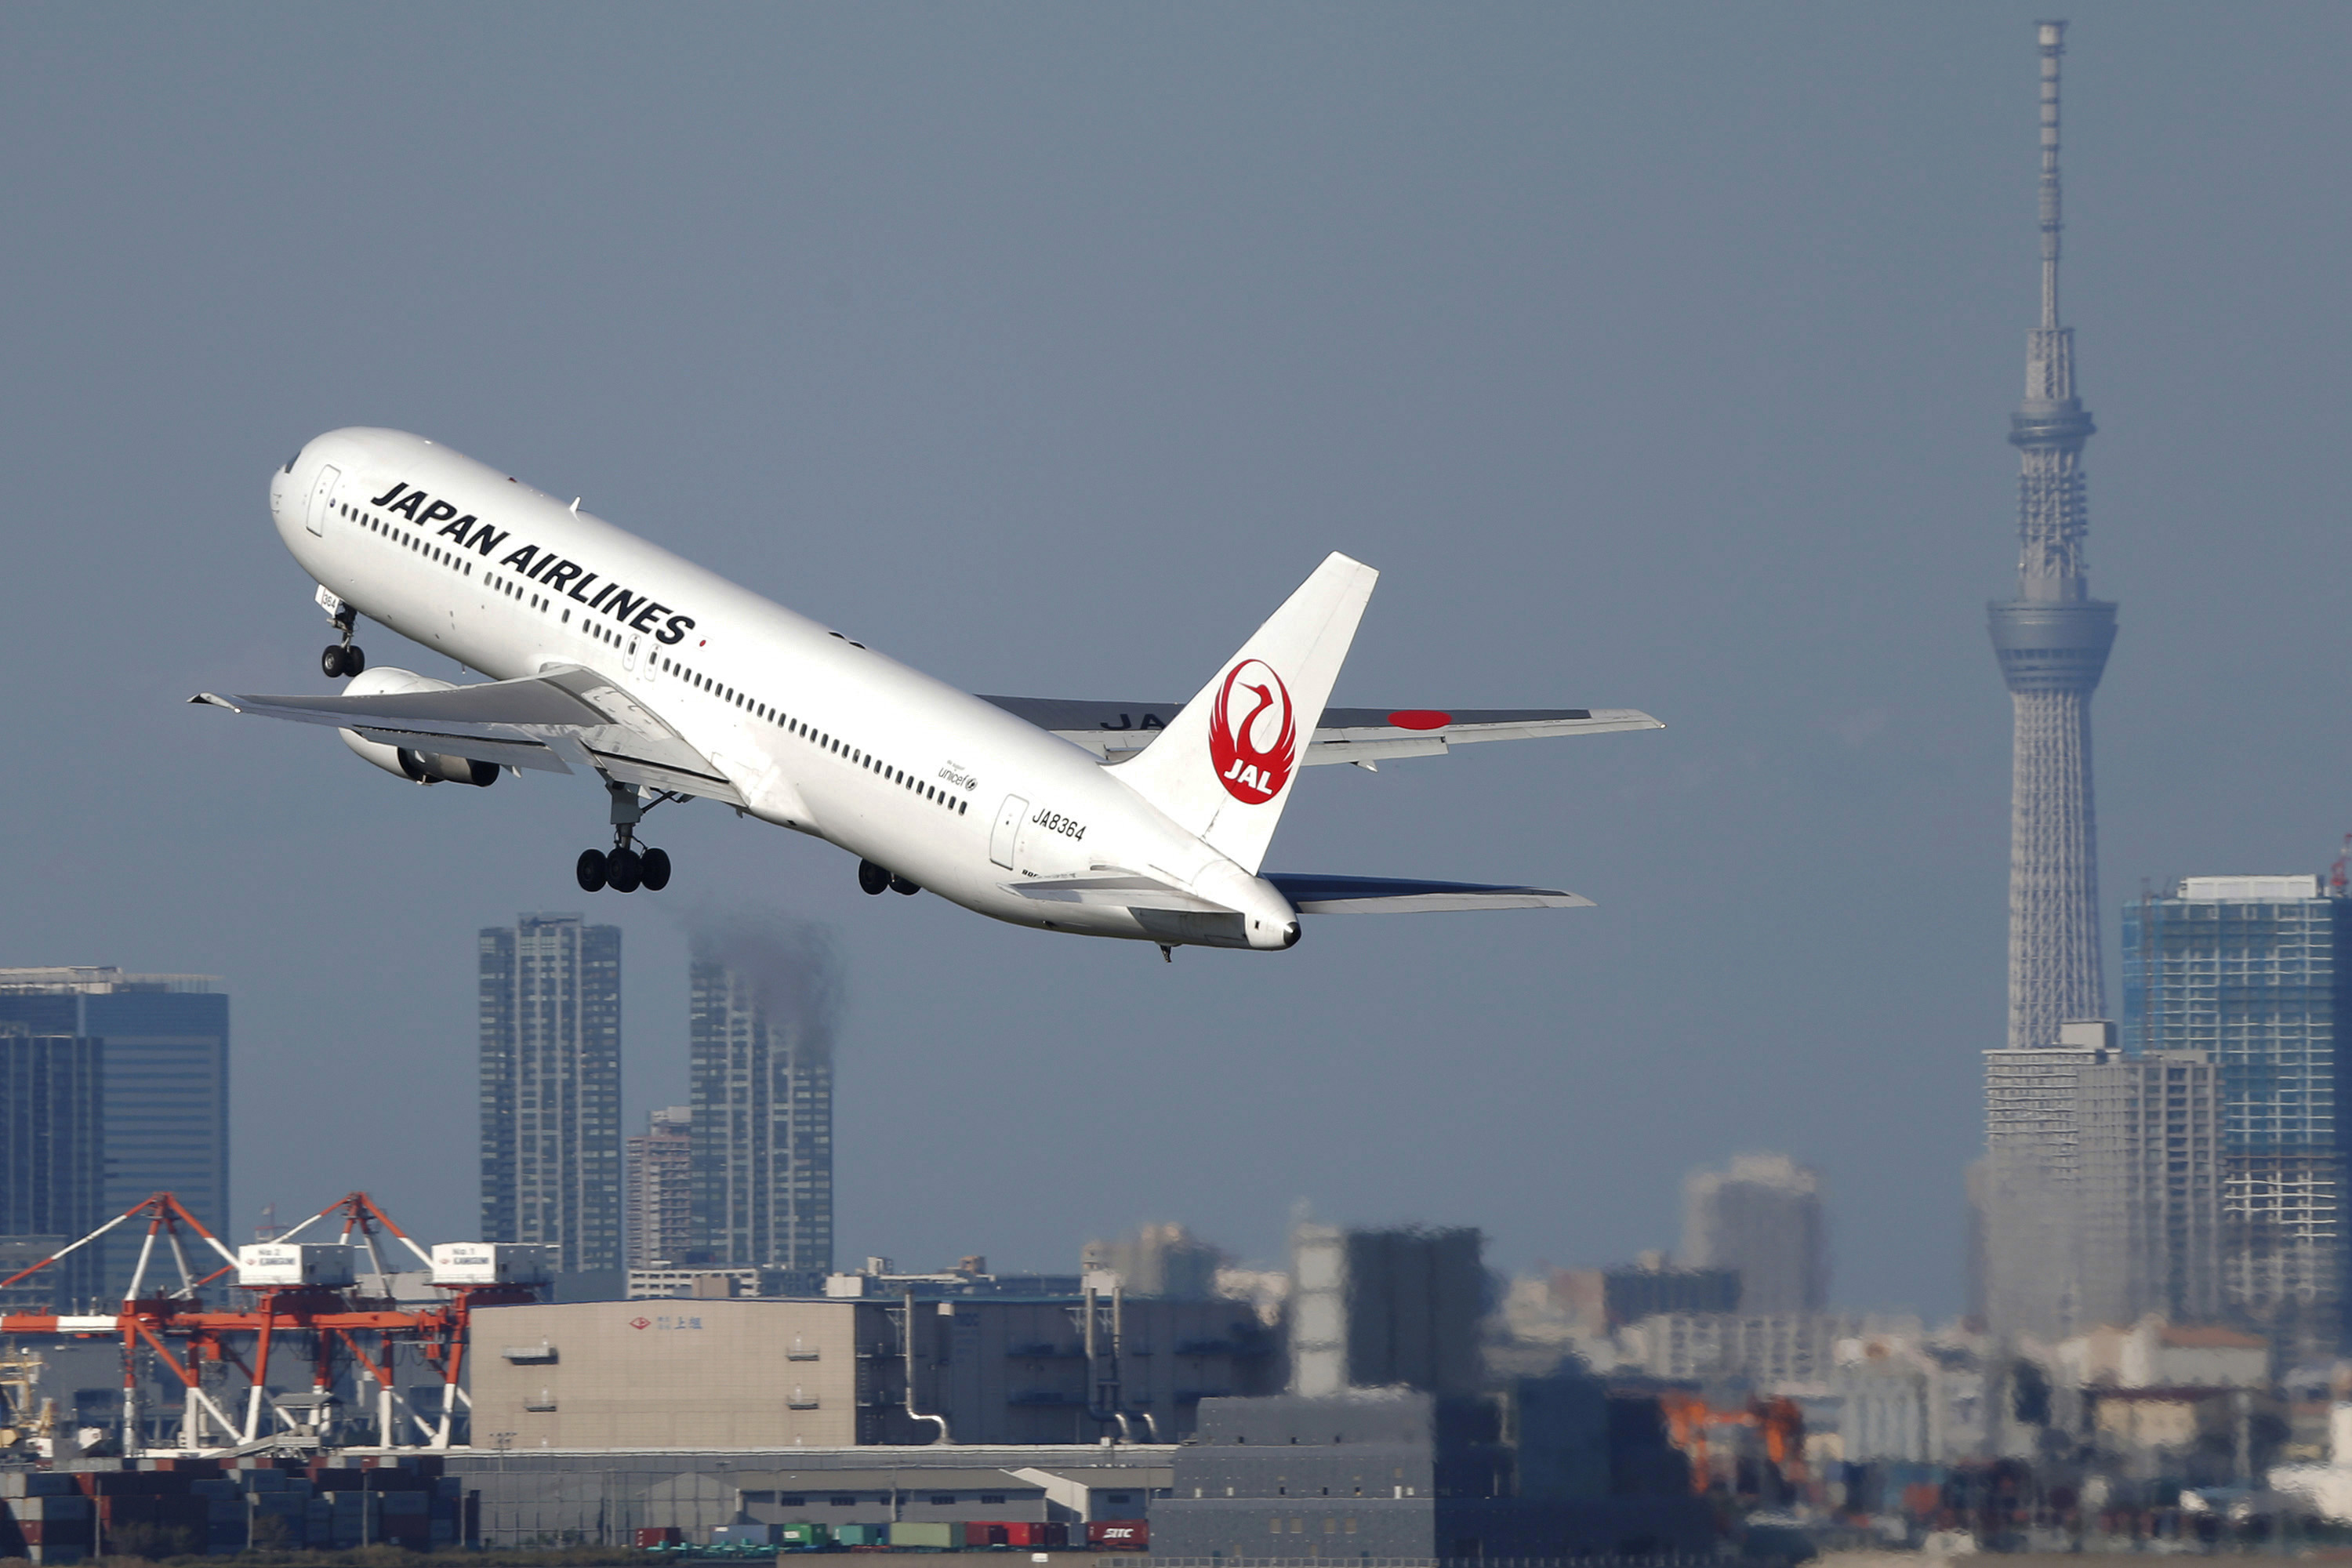 Gear up: A Japan Airlines Co. jetliner takes off from Tokyo's Haneda airport on Oct. 27. JAL said Thursday it will launch new direct flights between Tokyo and London and increase other flights from Haneda using allocated new slots. | BLOOMBERG